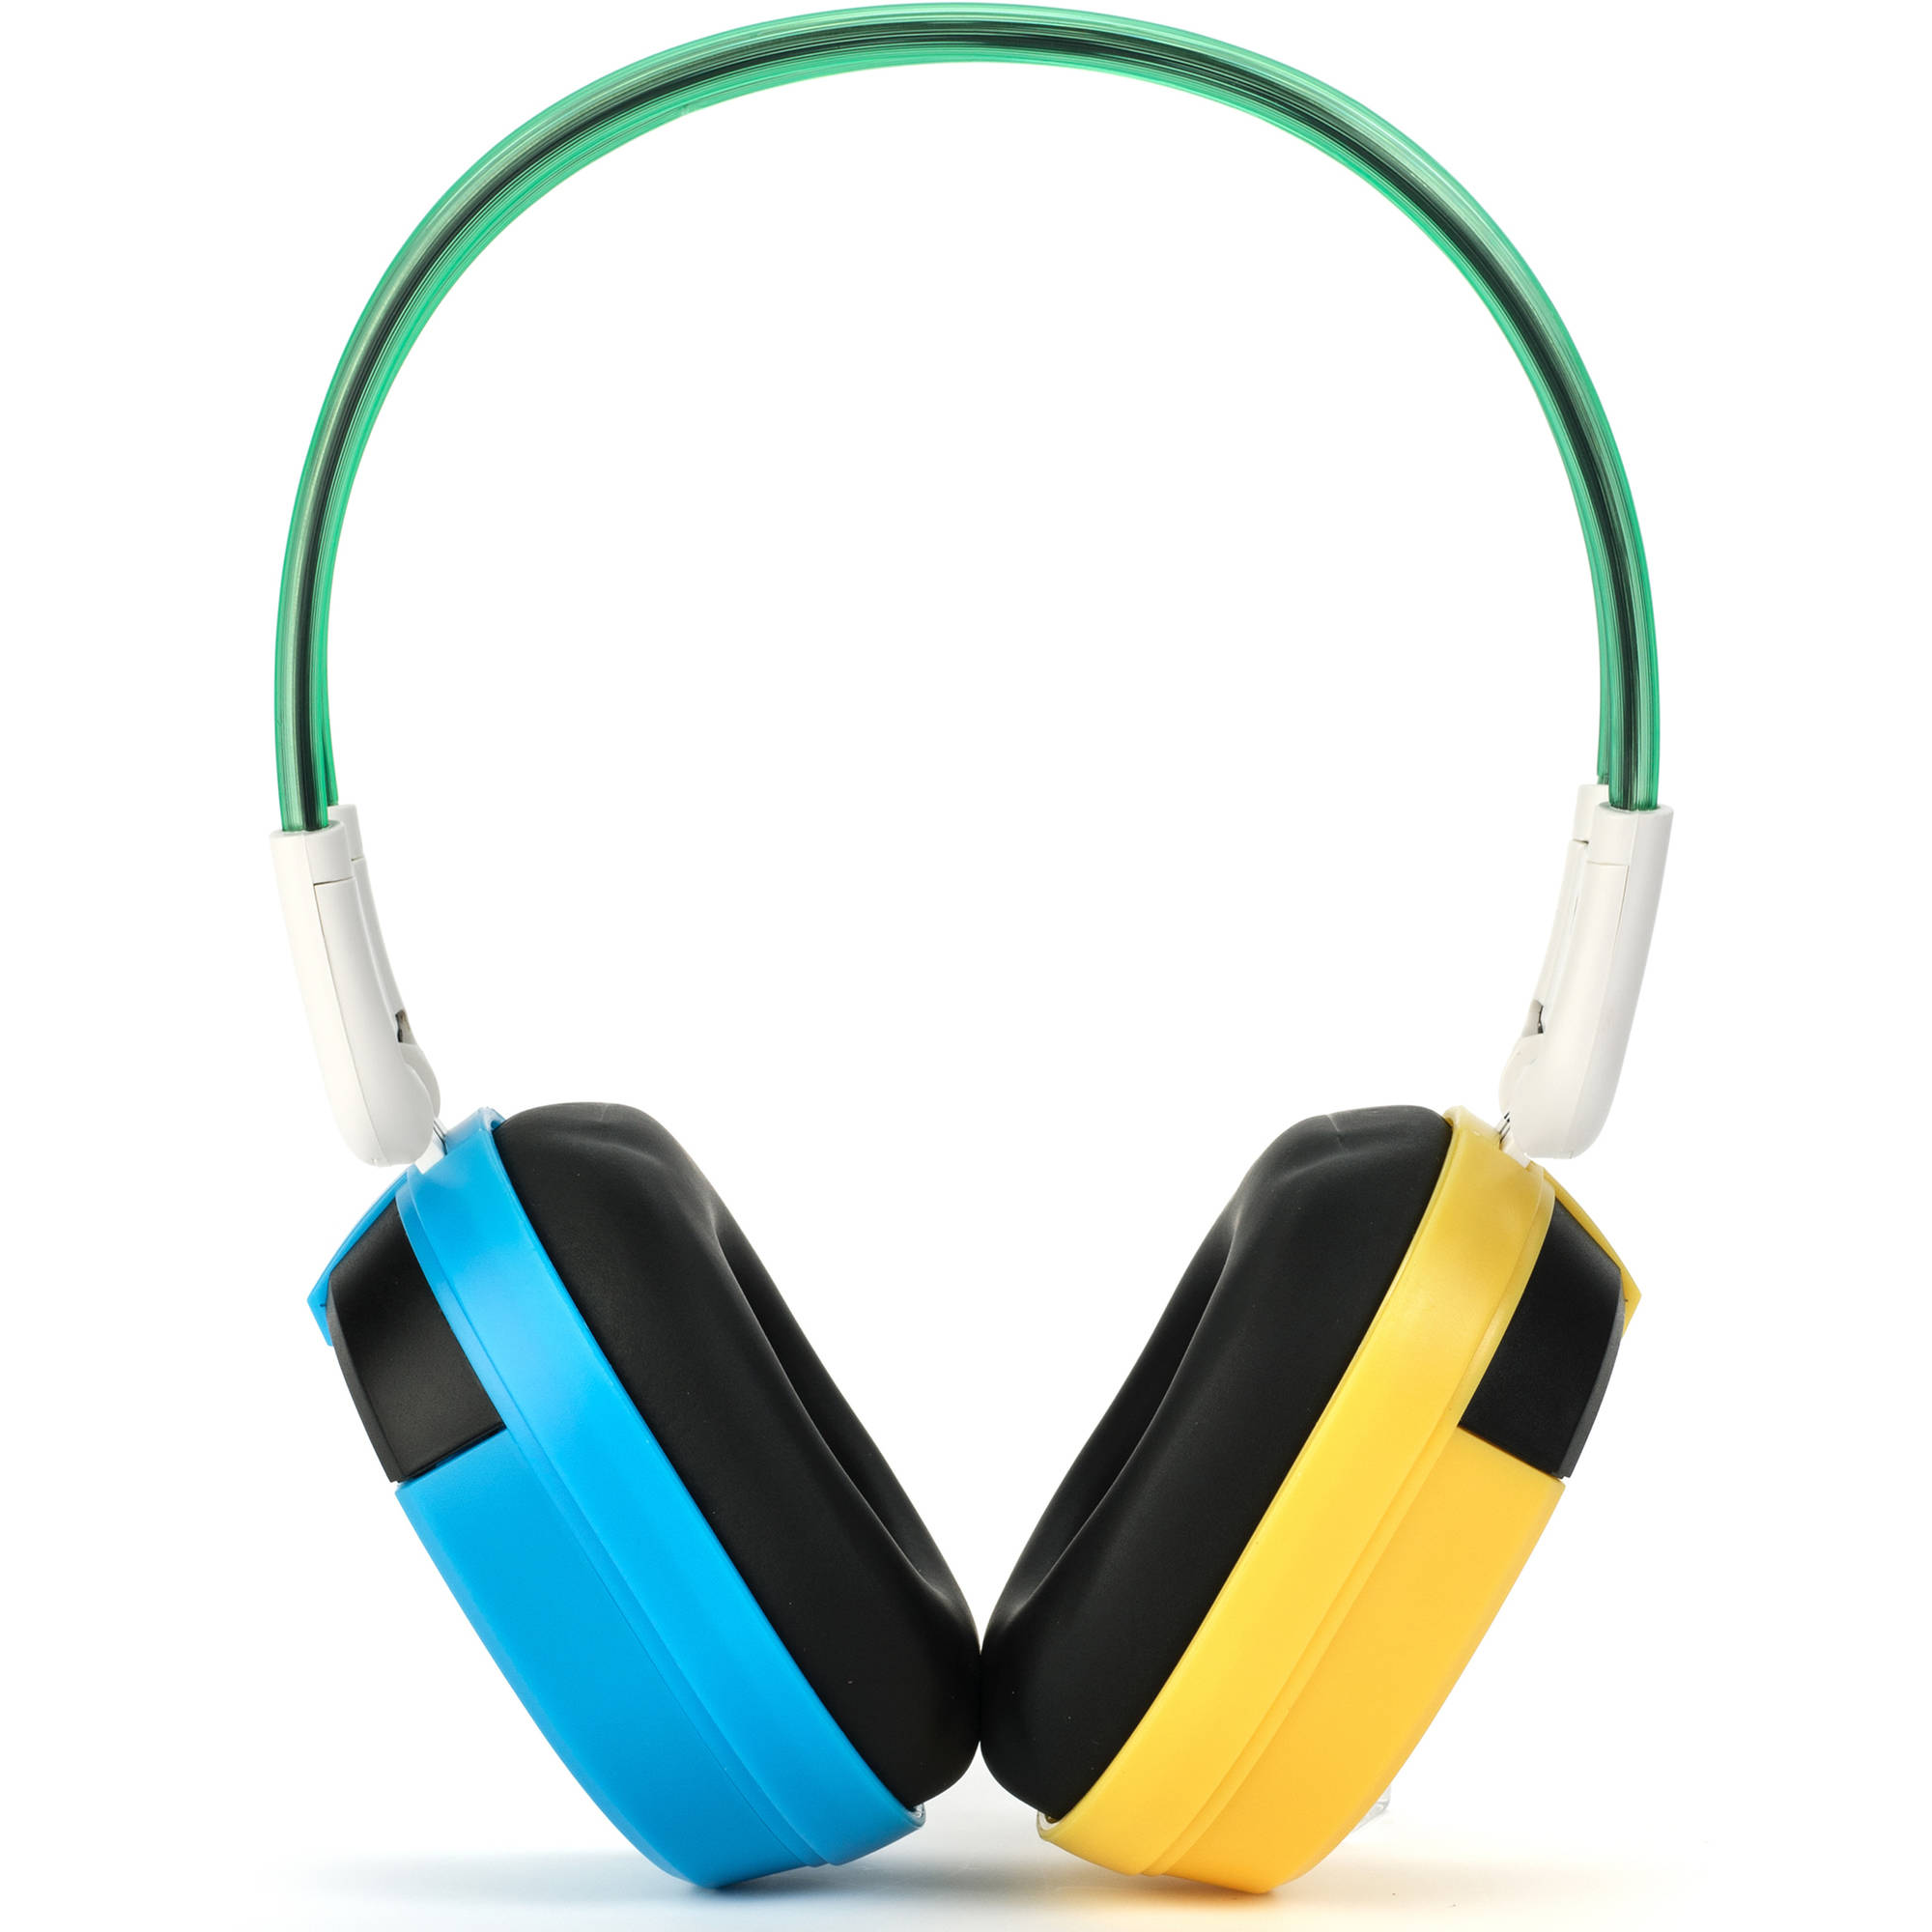 Bravo View IH-03A MKII - KID FRIENDLY Automotive IR Wireless Headphones (Blue/Yellow)